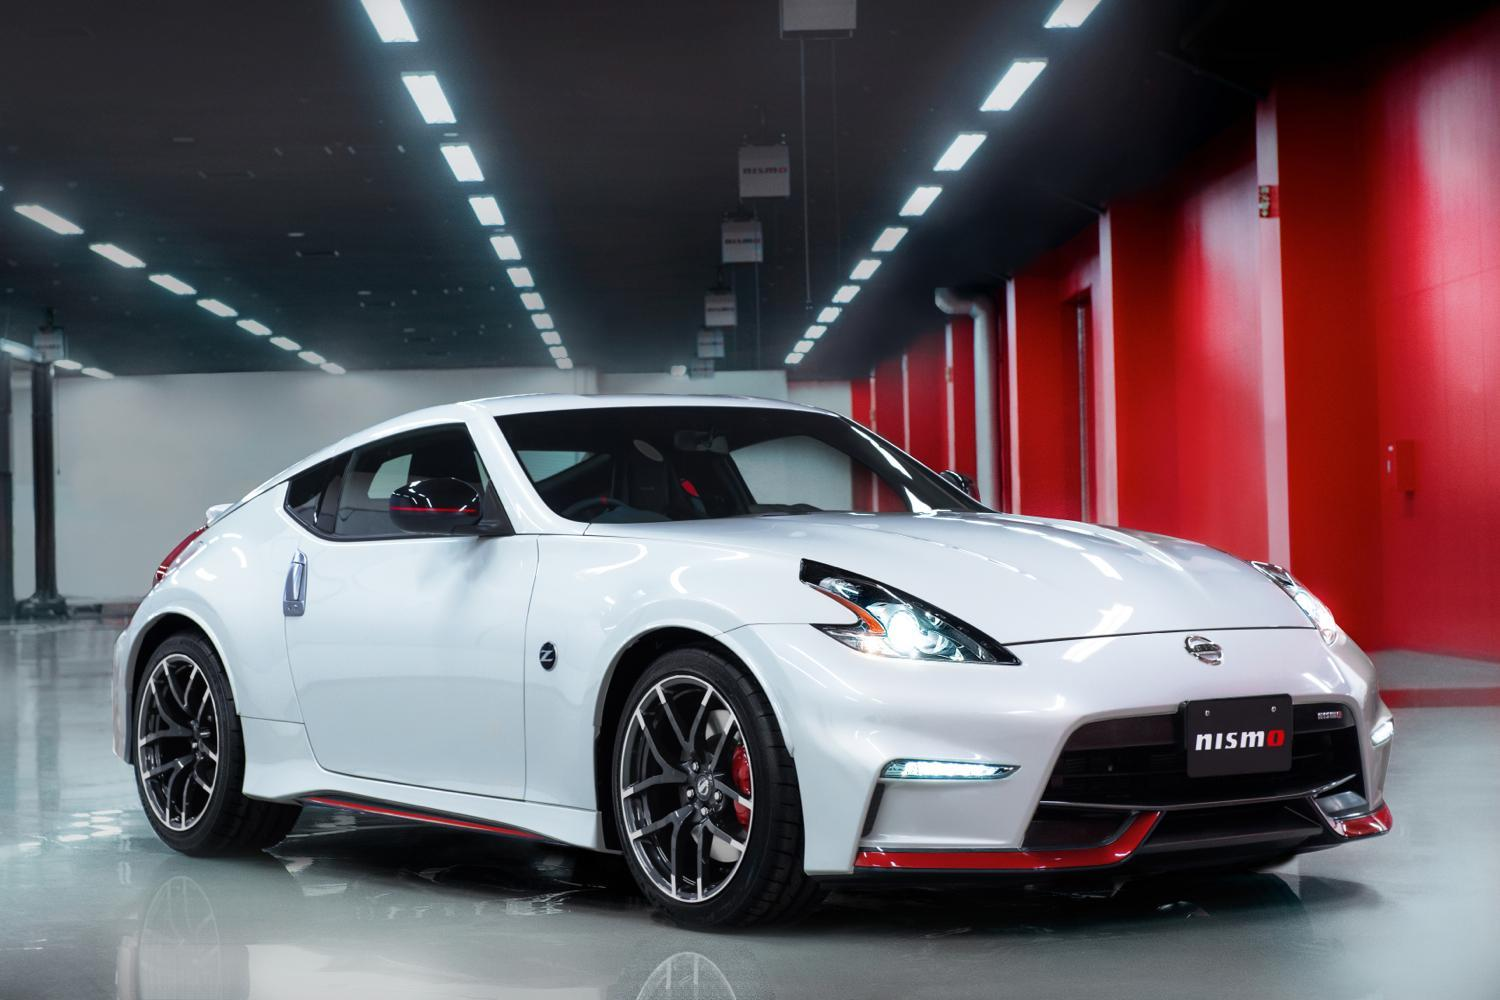 2018 nissan 380z. simple nissan one fair lady nissans 370z may rebadged z35 feature turbo hybrid powertrain  2017 2015 nissan nismo for 2018 380z z